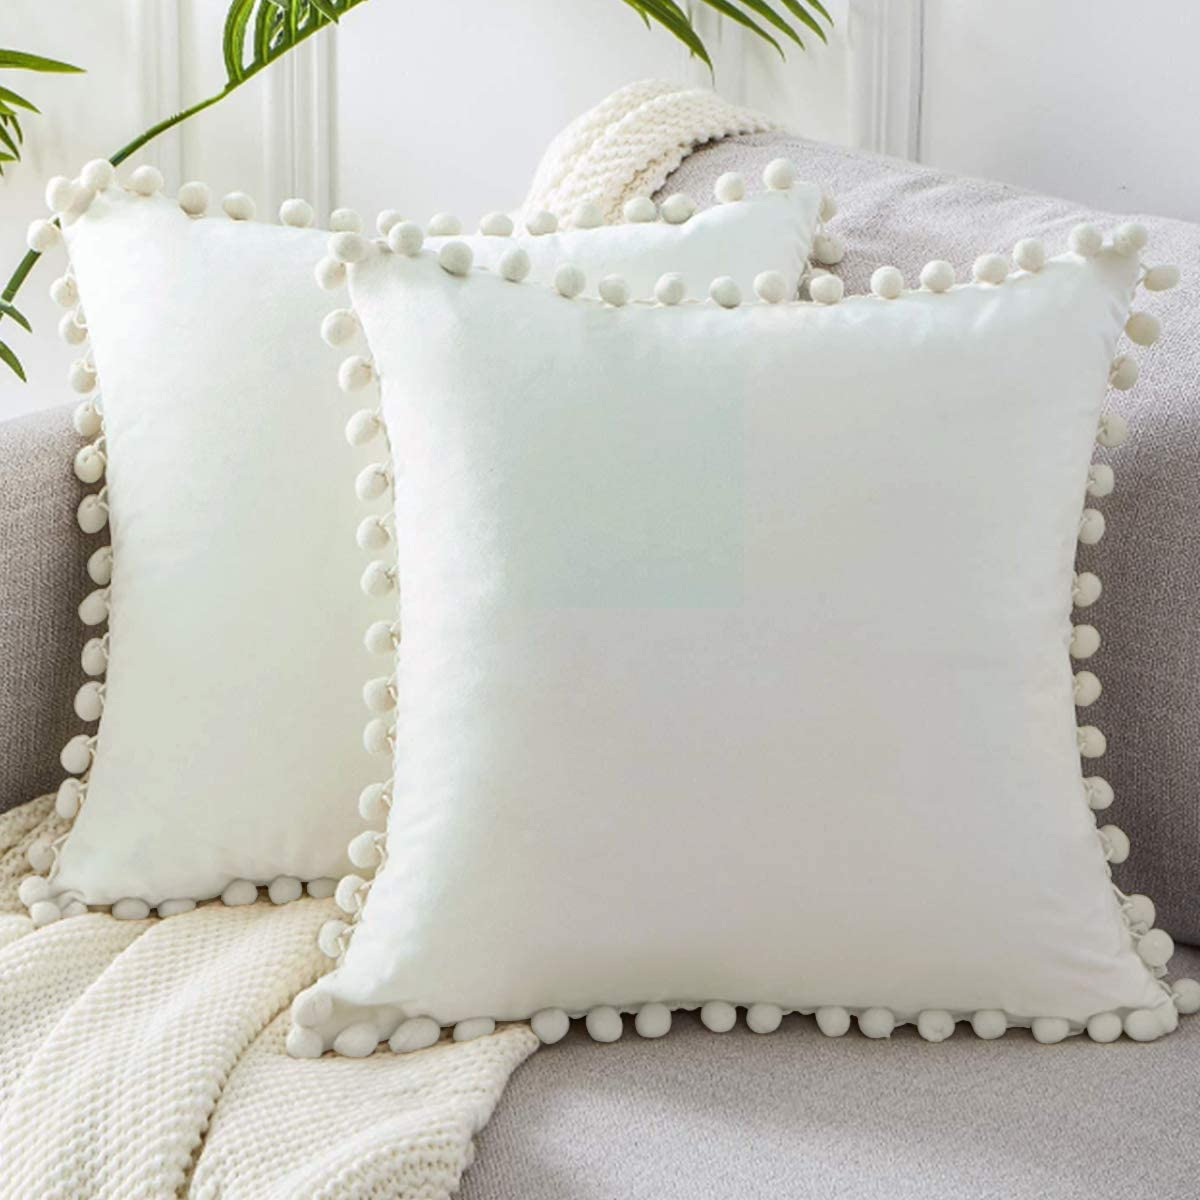 LHKIS Throw Pillow Covers 18x18 Set of 2 Decrative for Couch Sofa, with Pom Poms, Beige